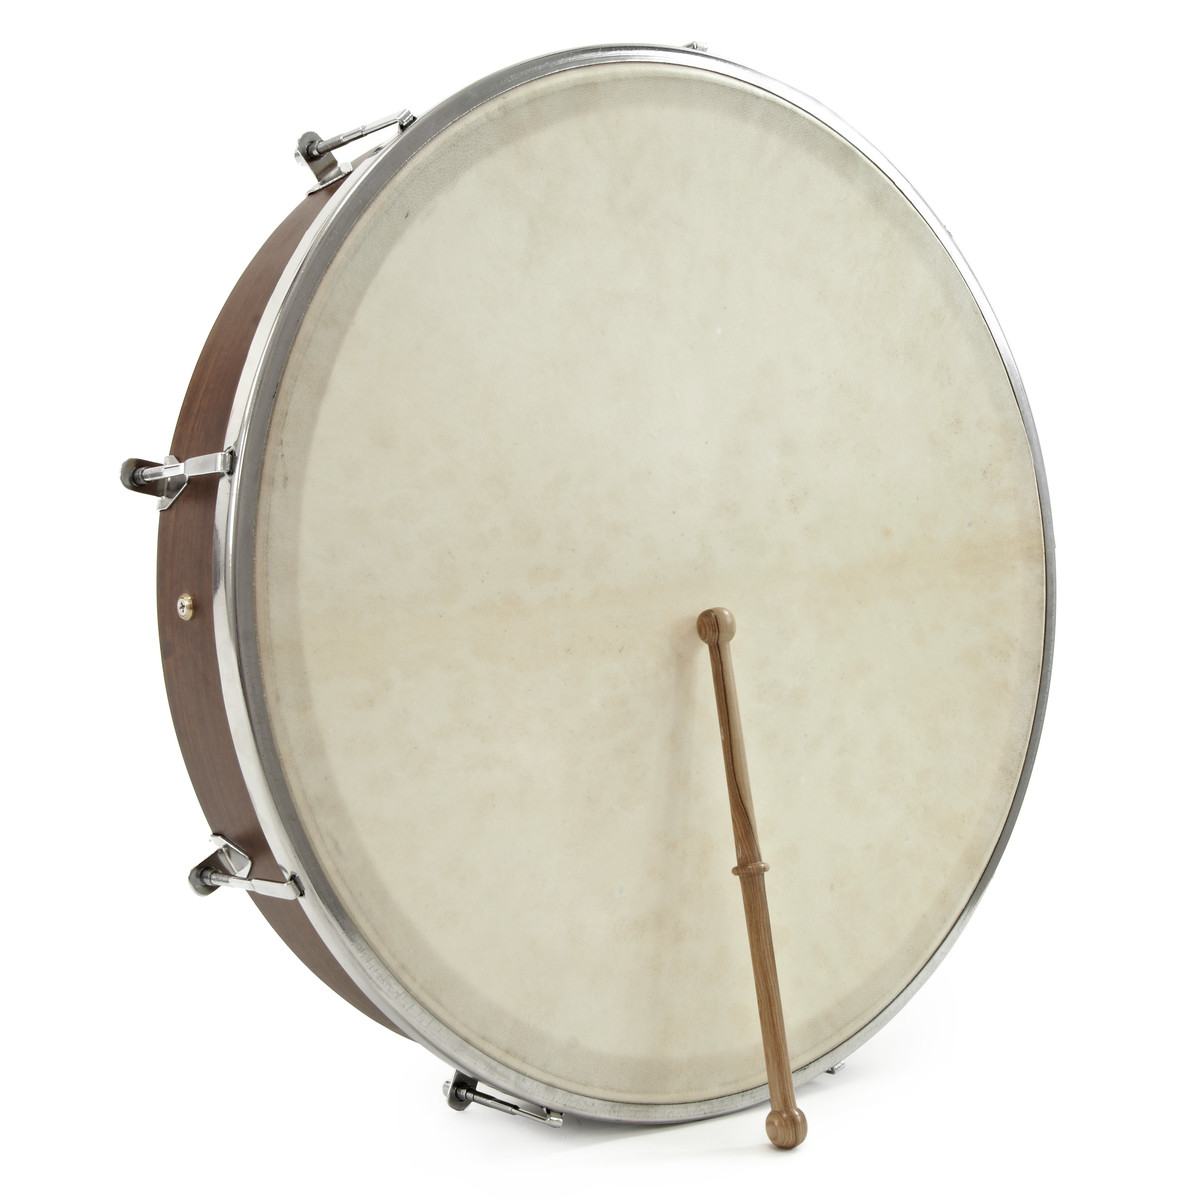 Image of 18 Inch Tuneable Bodhran with Bag and Beater